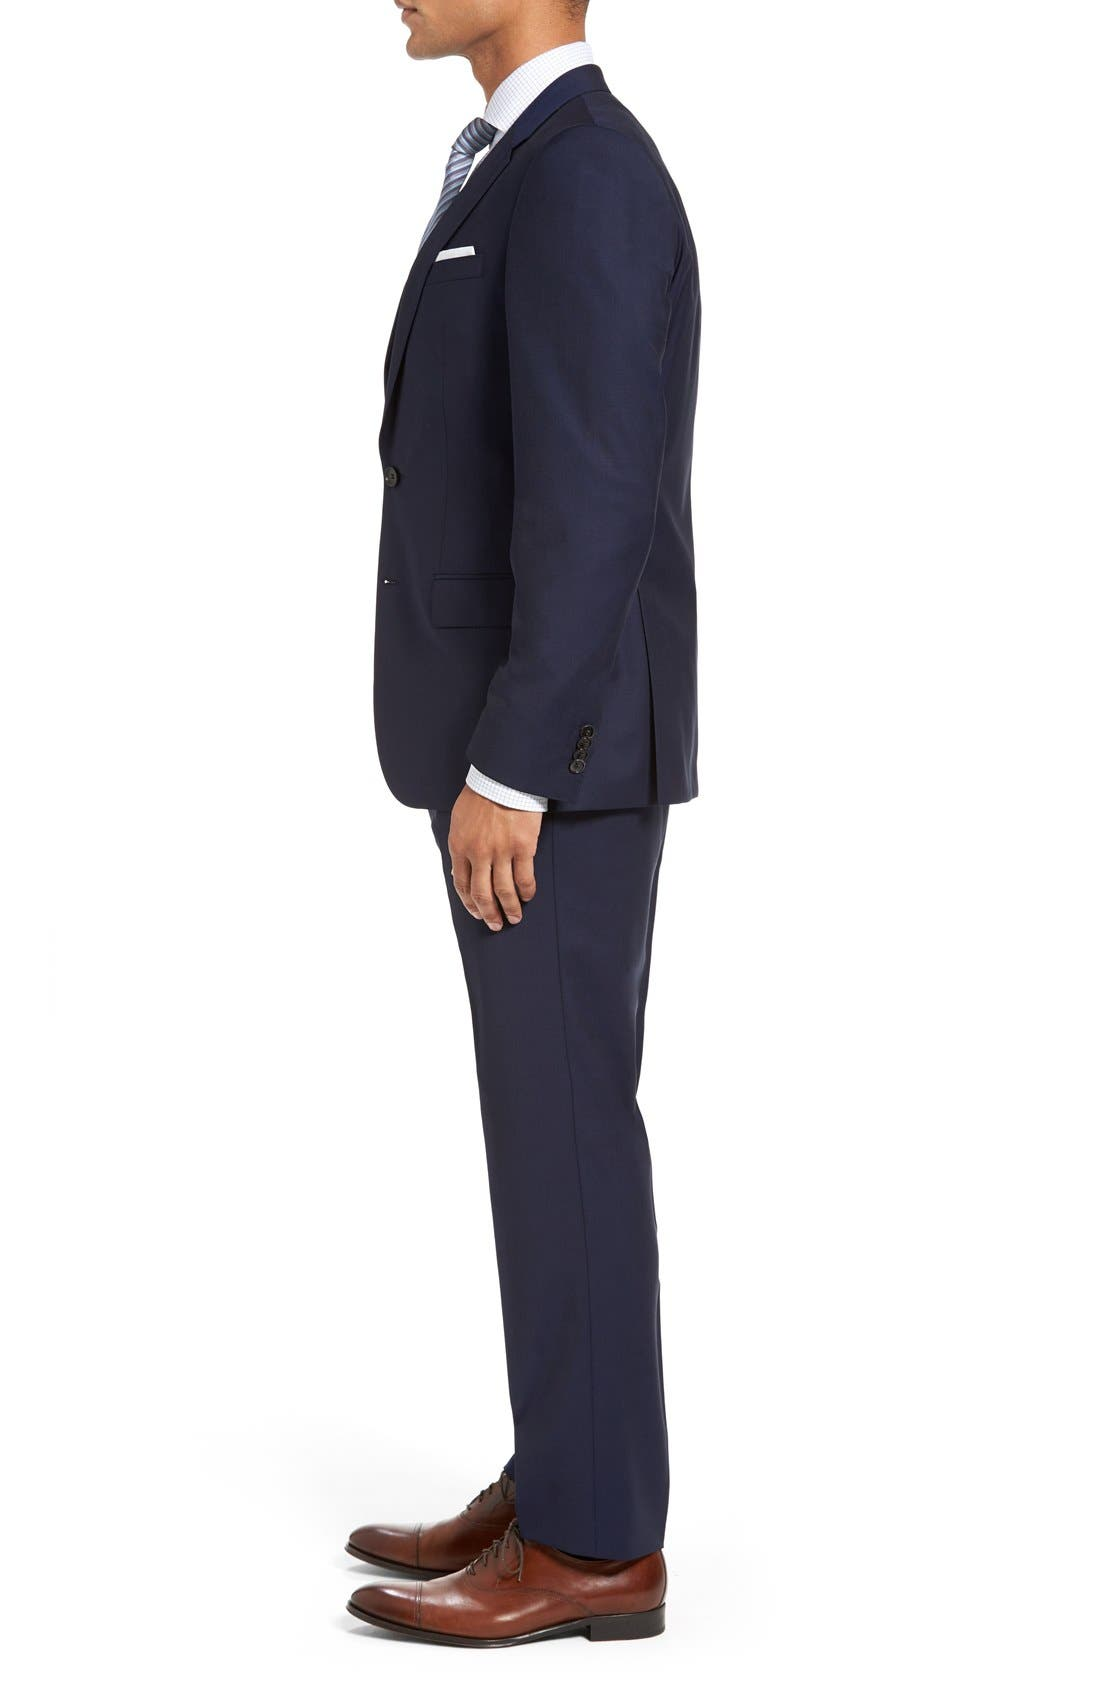 Huge/Genius Trim Fit Navy Wool Suit,                             Alternate thumbnail 3, color,                             NAVY